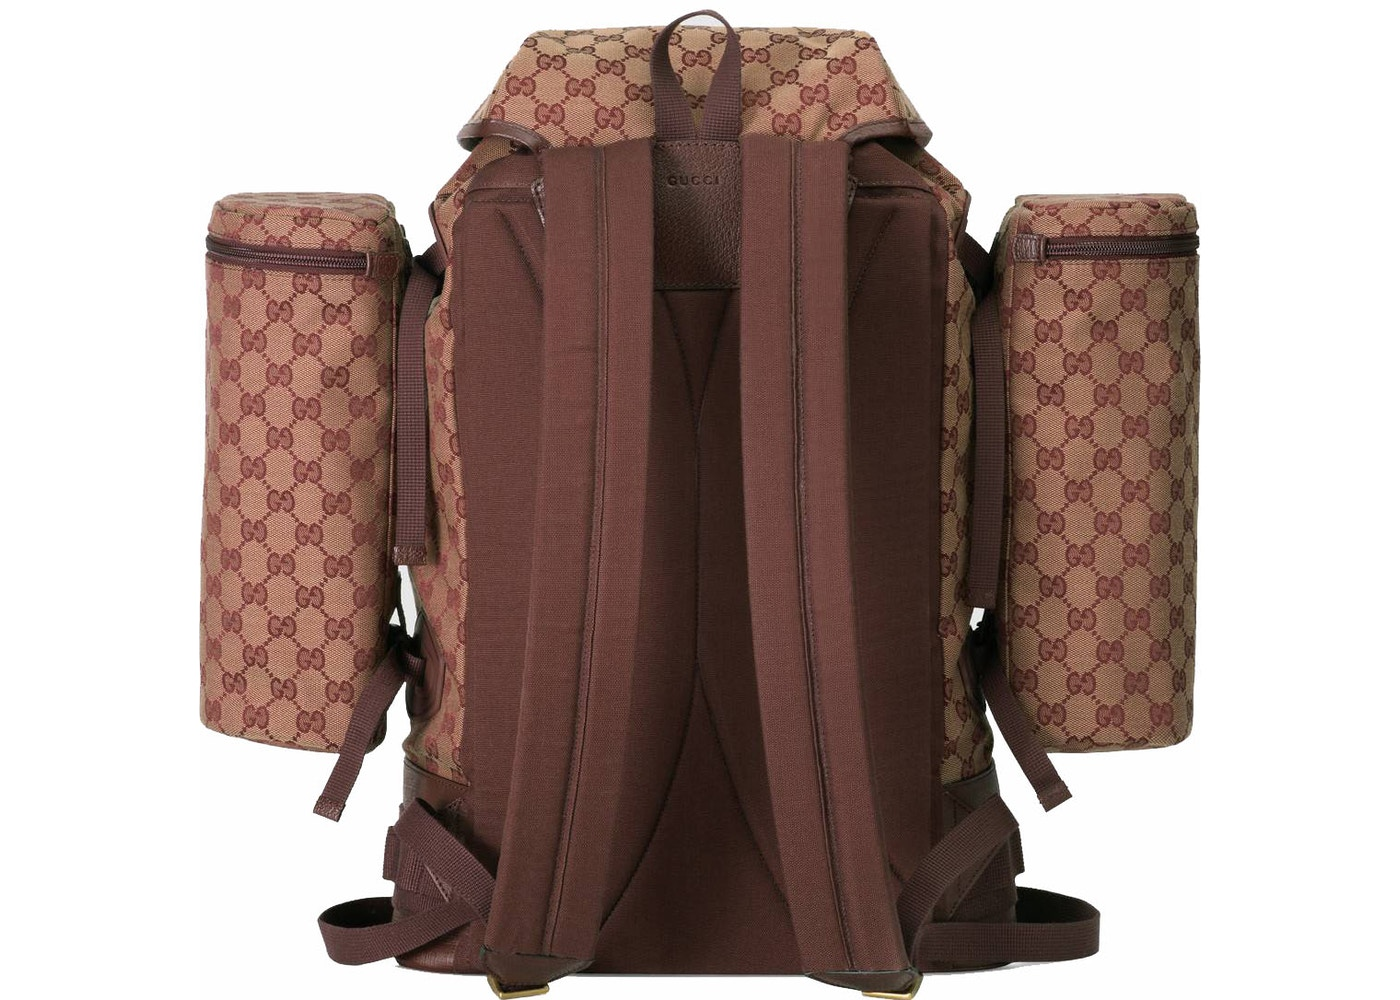 a6a94b688112a6 Sell. or Ask. View All Bids. Gucci Backpack Canvas Large Beige/Bordeaux